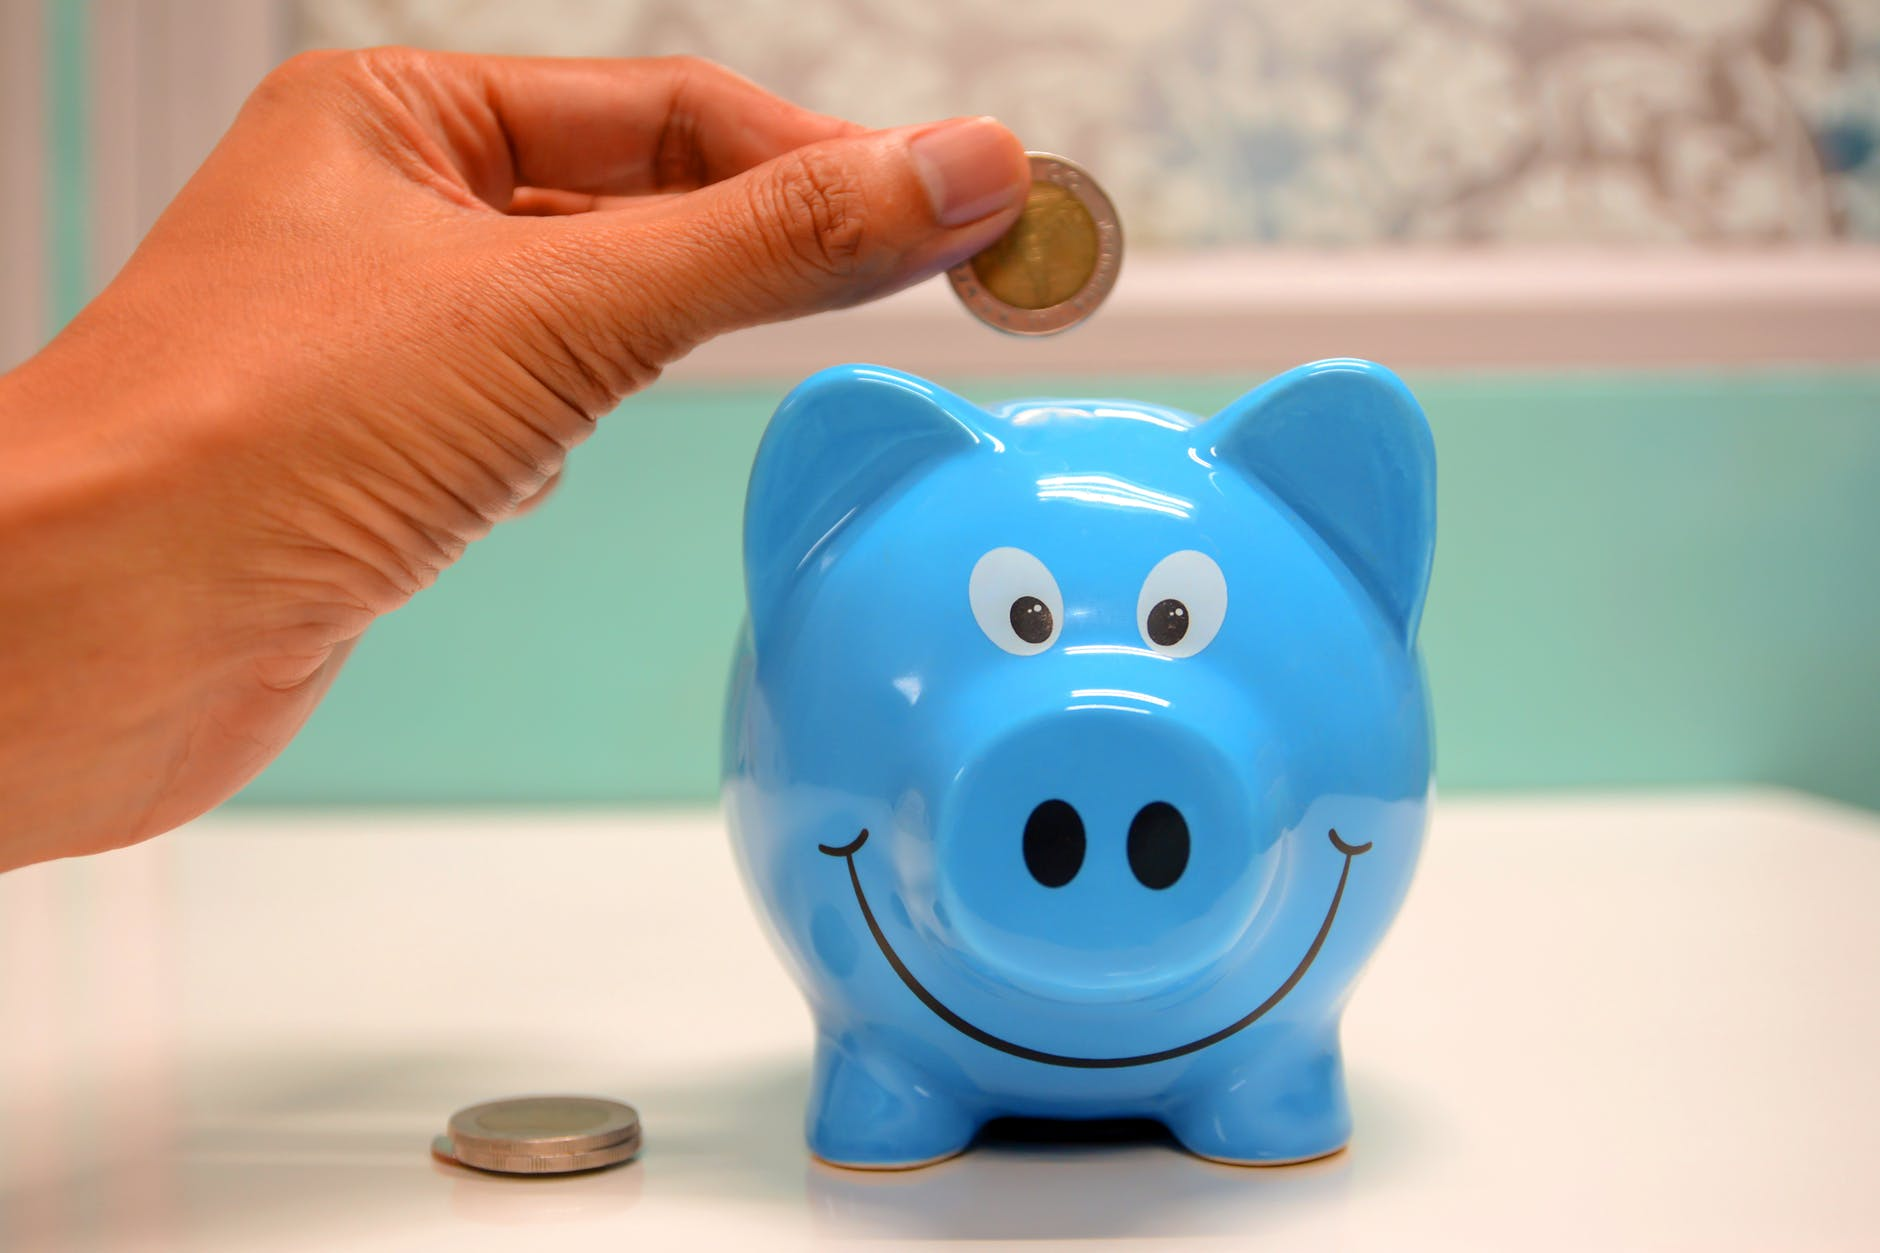 7 Fun And Easy Tips to Save More Money